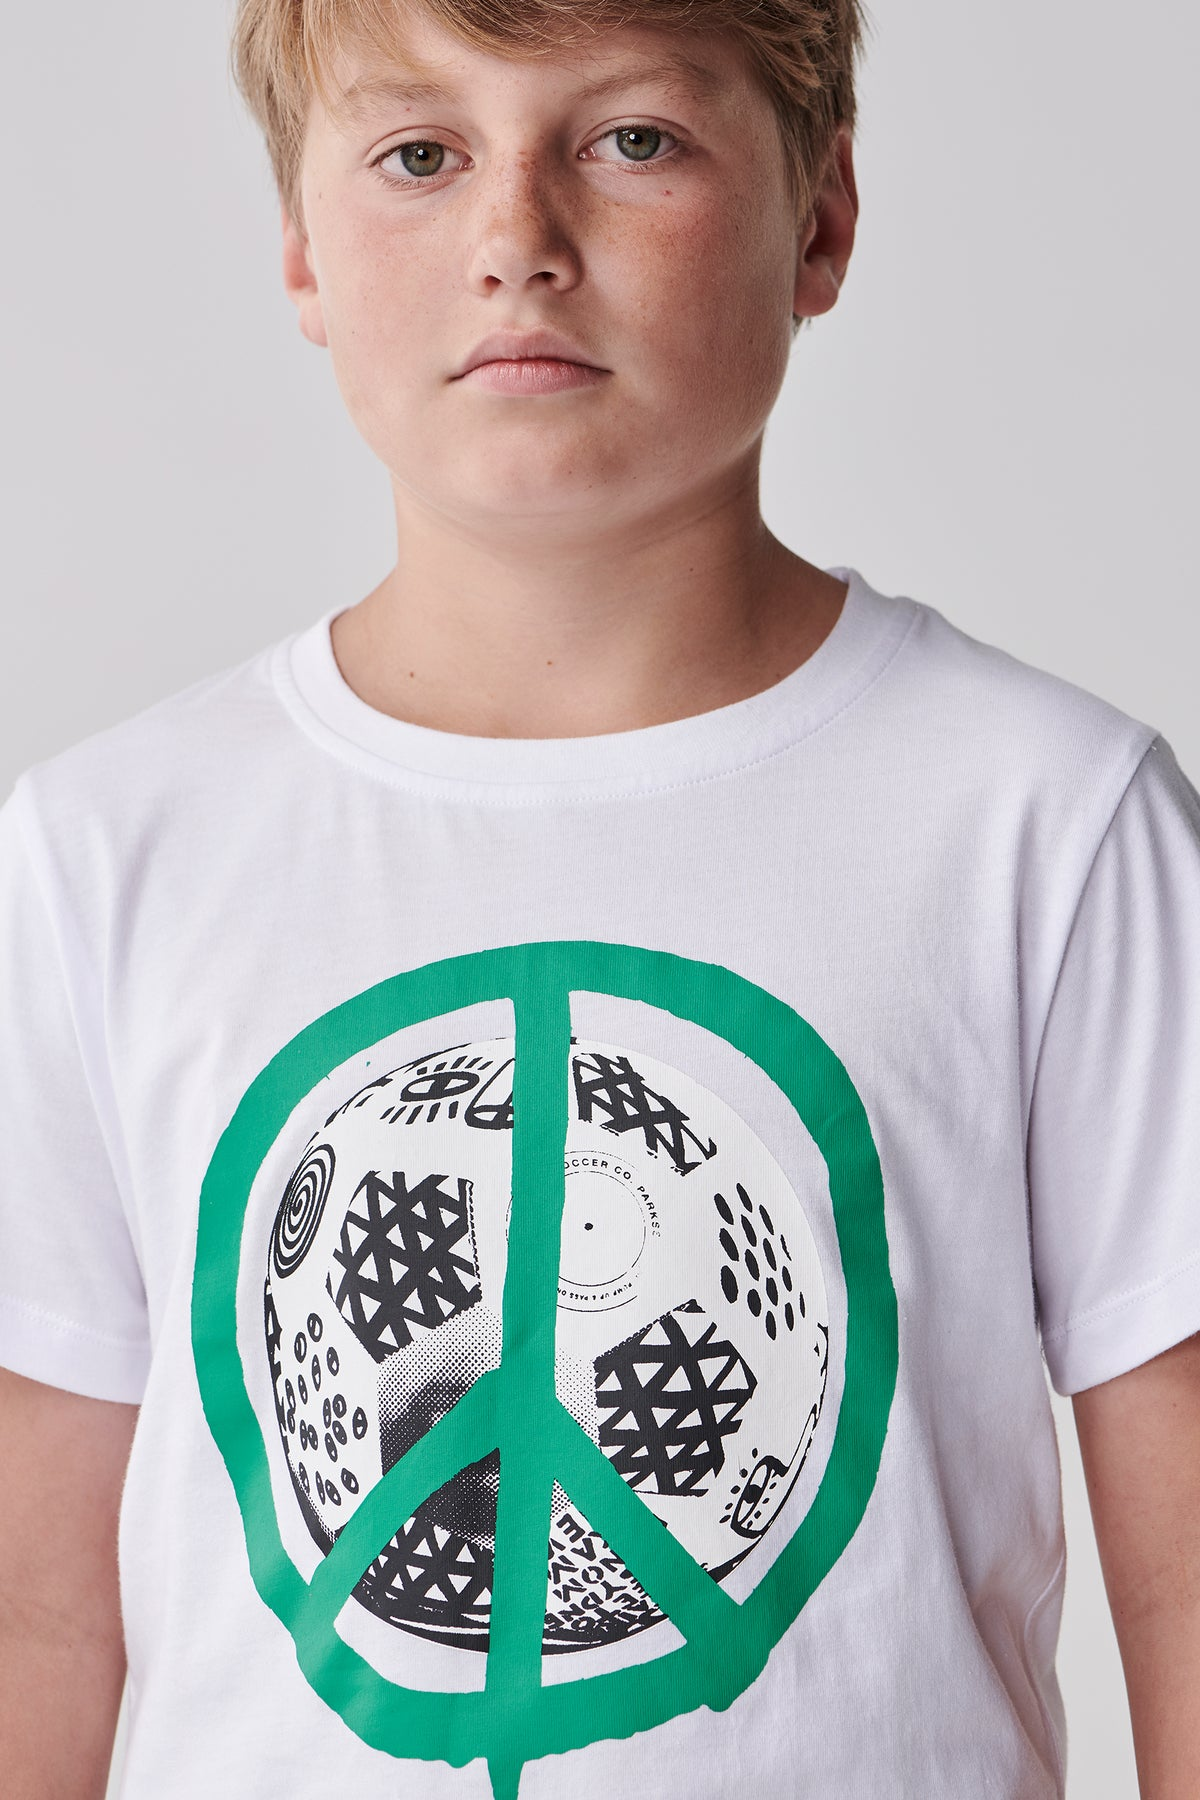 【Kids】Drop Balls Not Bombs Tシャツ